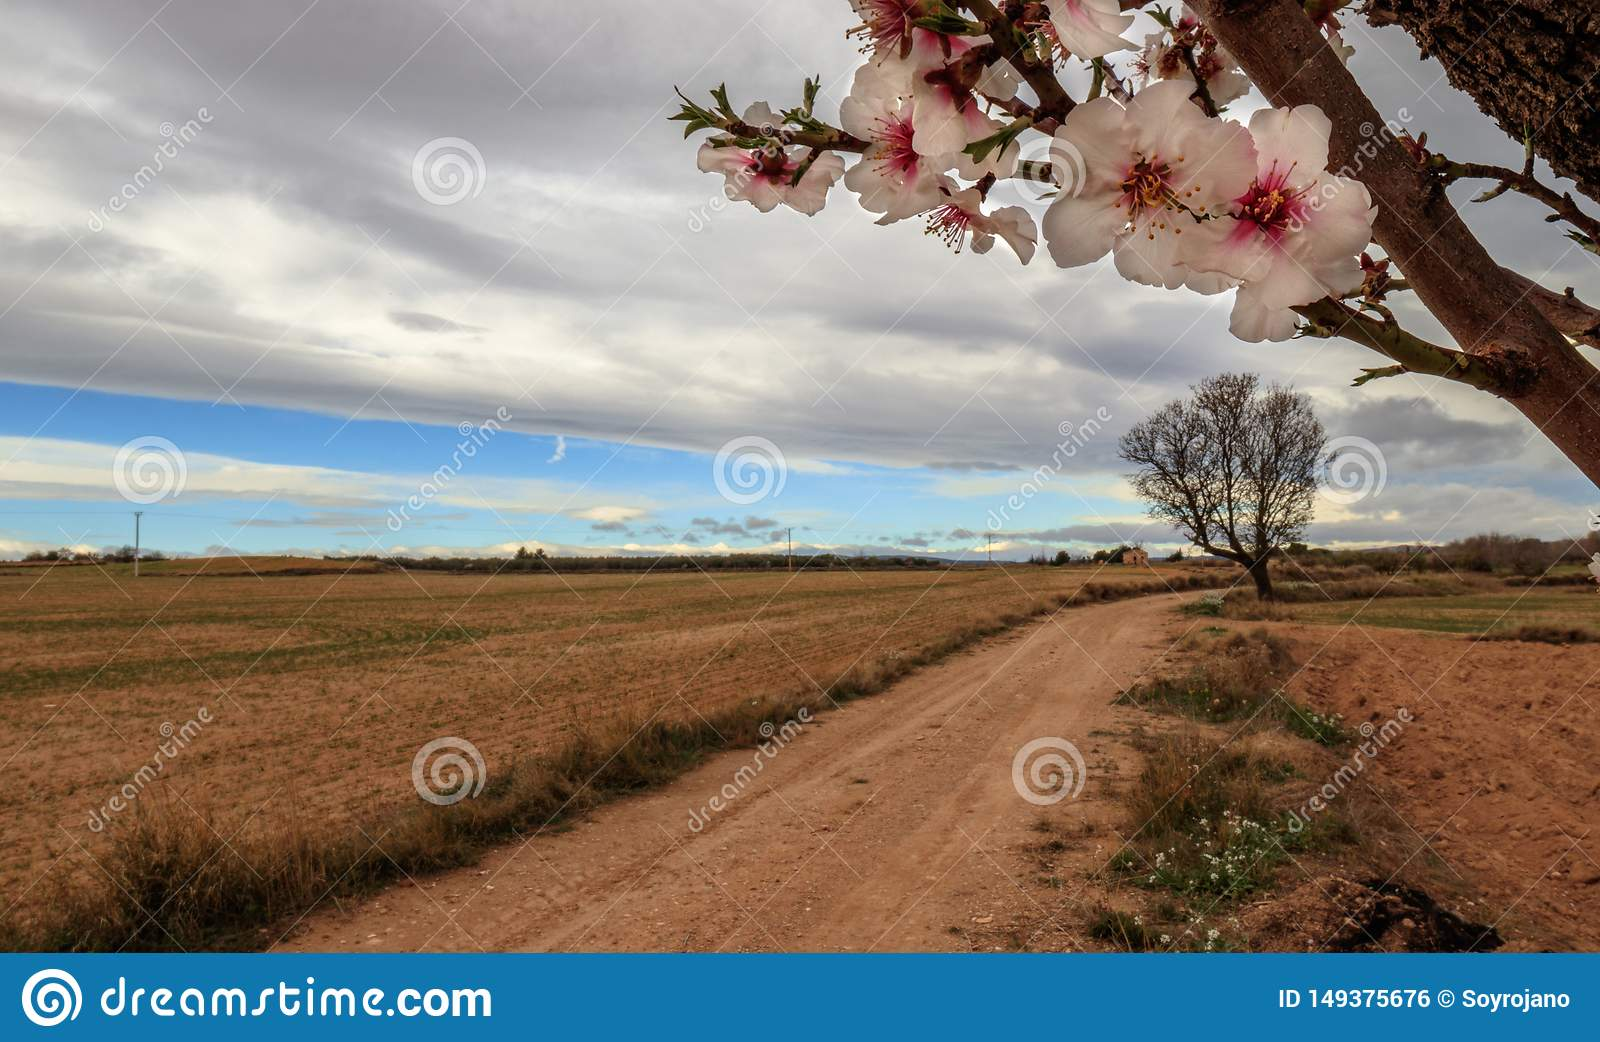 Almond flowers way